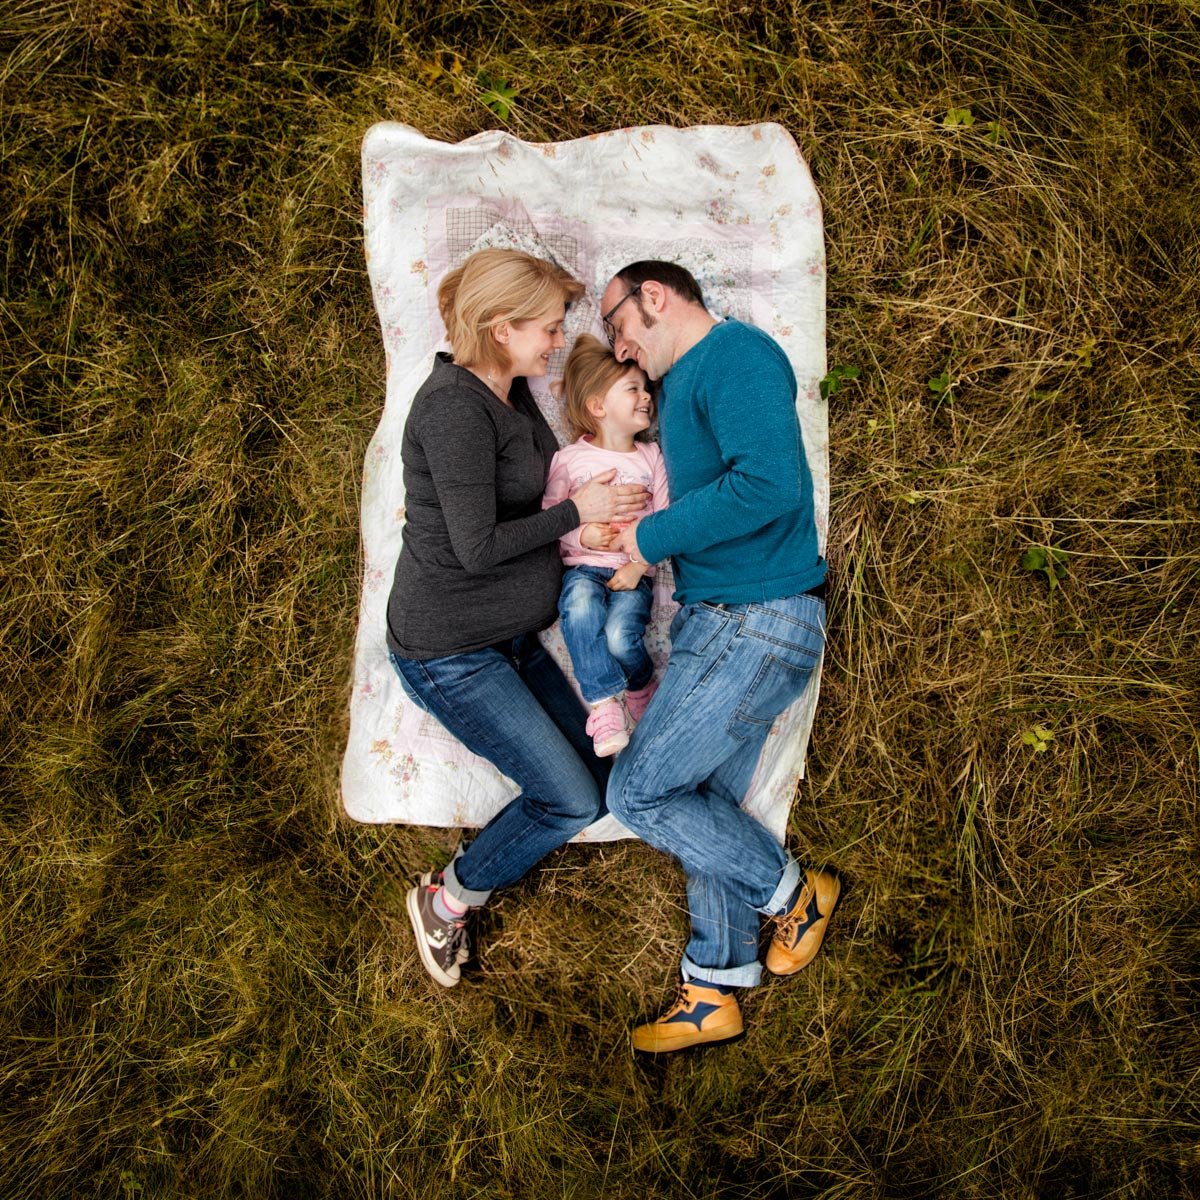 7 Outdoor maternity photoshoot planning tips. 14